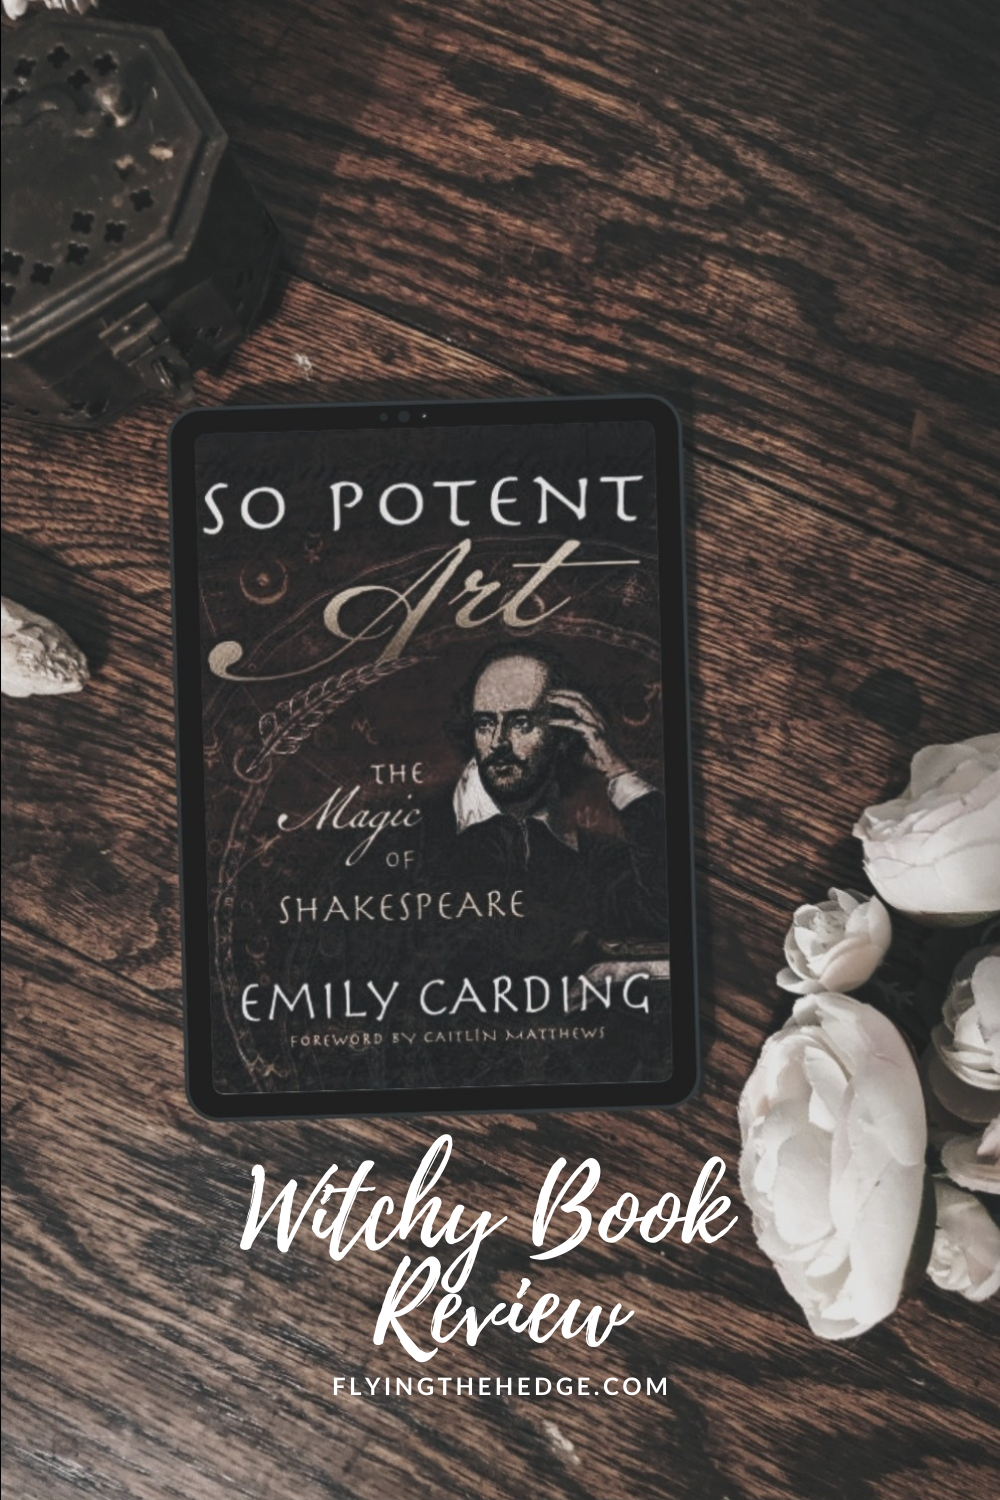 book review, literature, Shakespeare, So Potent Art, theatre, Hamlet, Midsummer Night's Dream, witchcraft, pagan, neopagan, witch, witch book, witchy book review, witchy reads